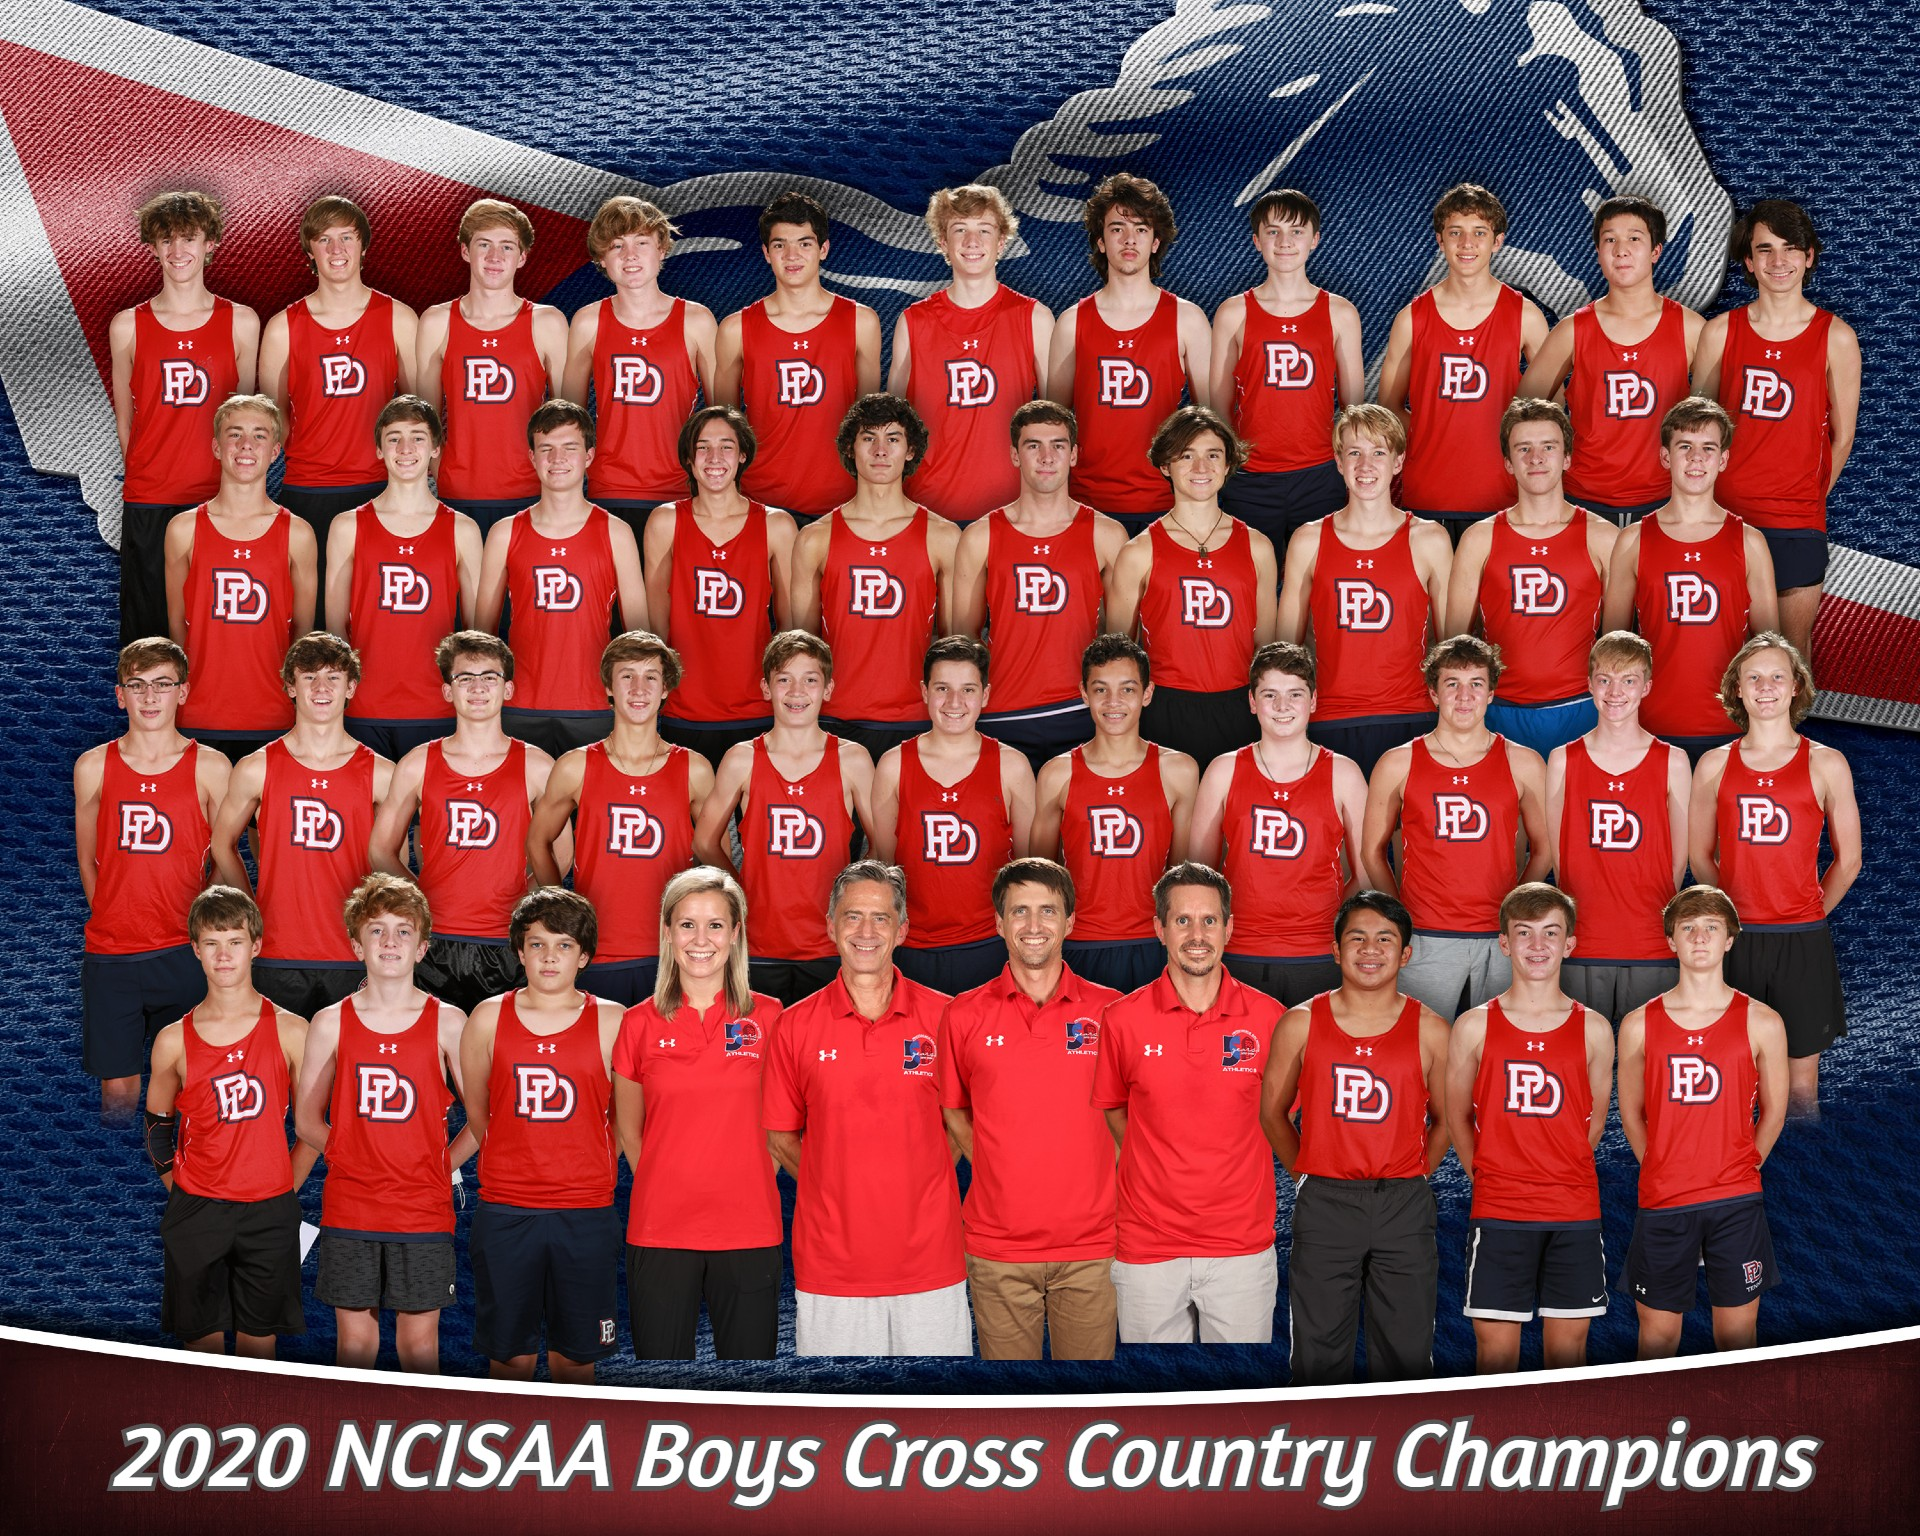 Boys Cross Country team wins fourth consecutive NCISAA State Championship